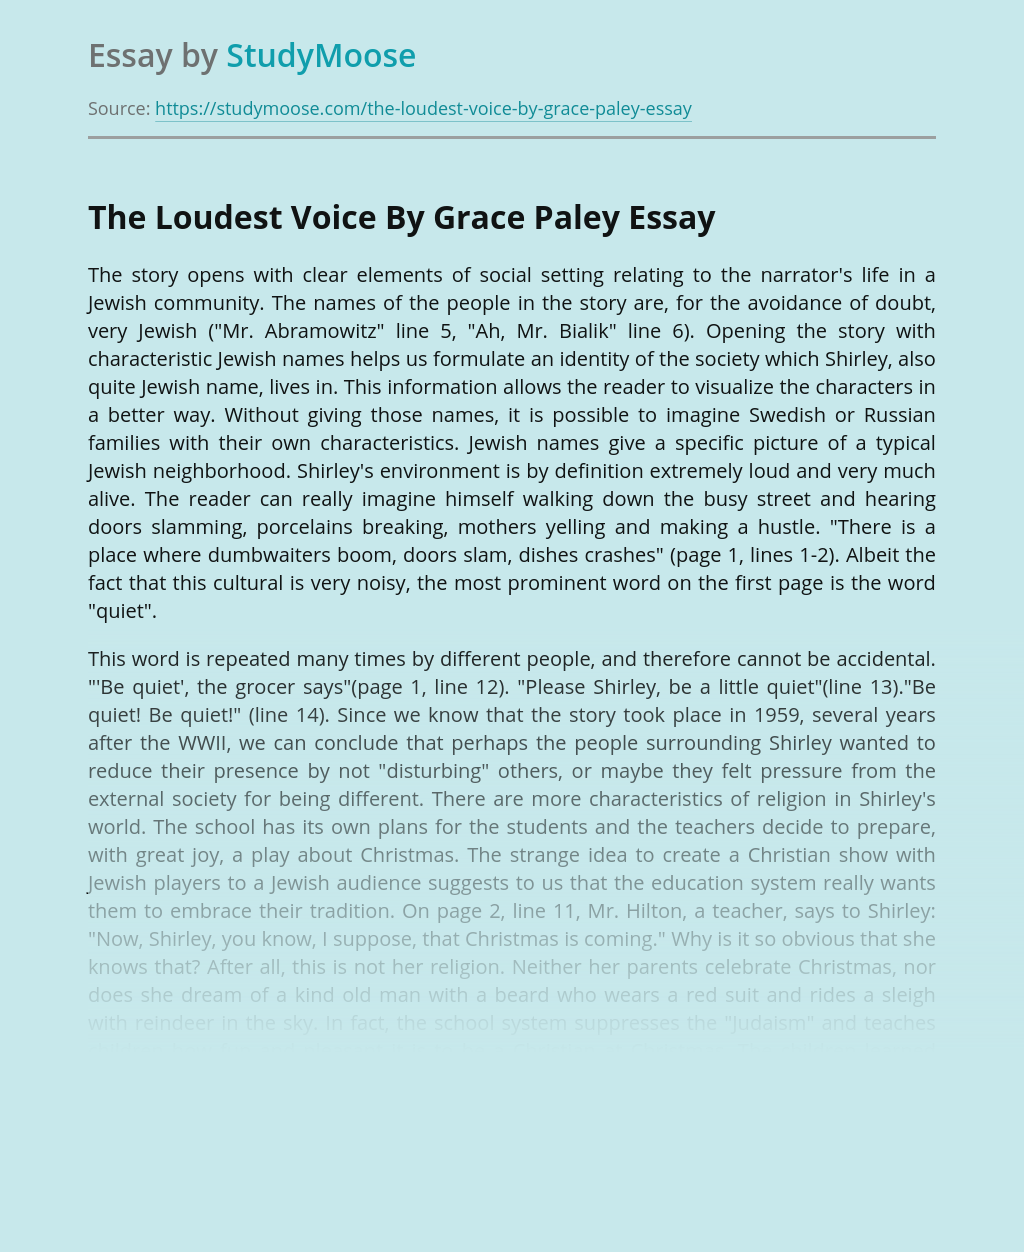 The Loudest Voice By Grace Paley